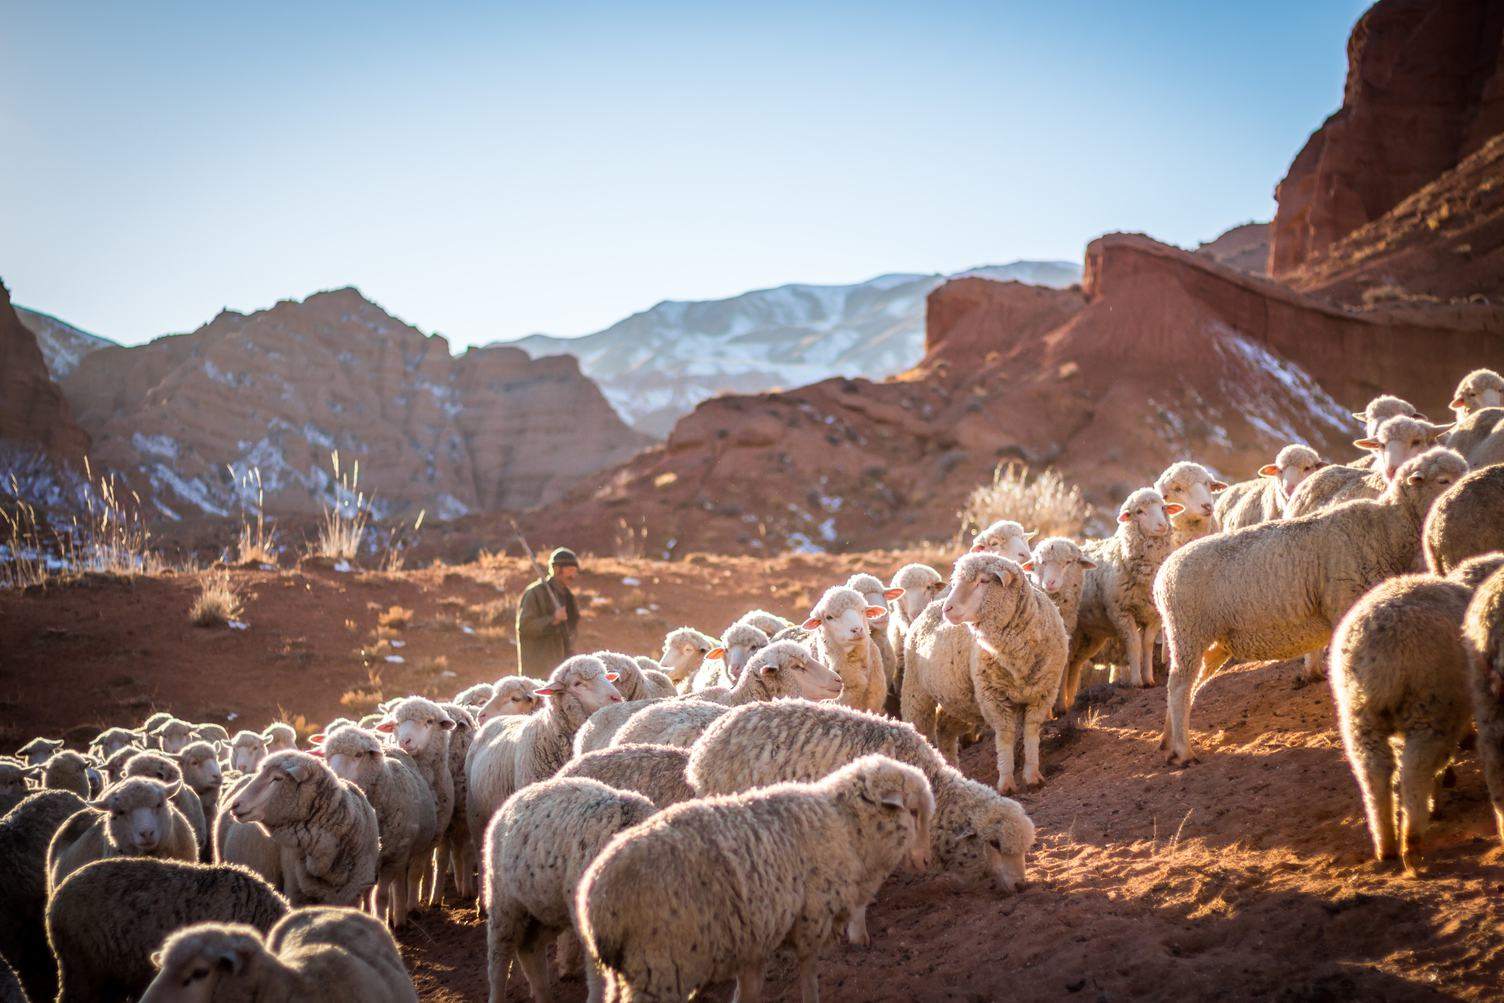 Flock of Sheep in the Mountains of Kyrgyzstan